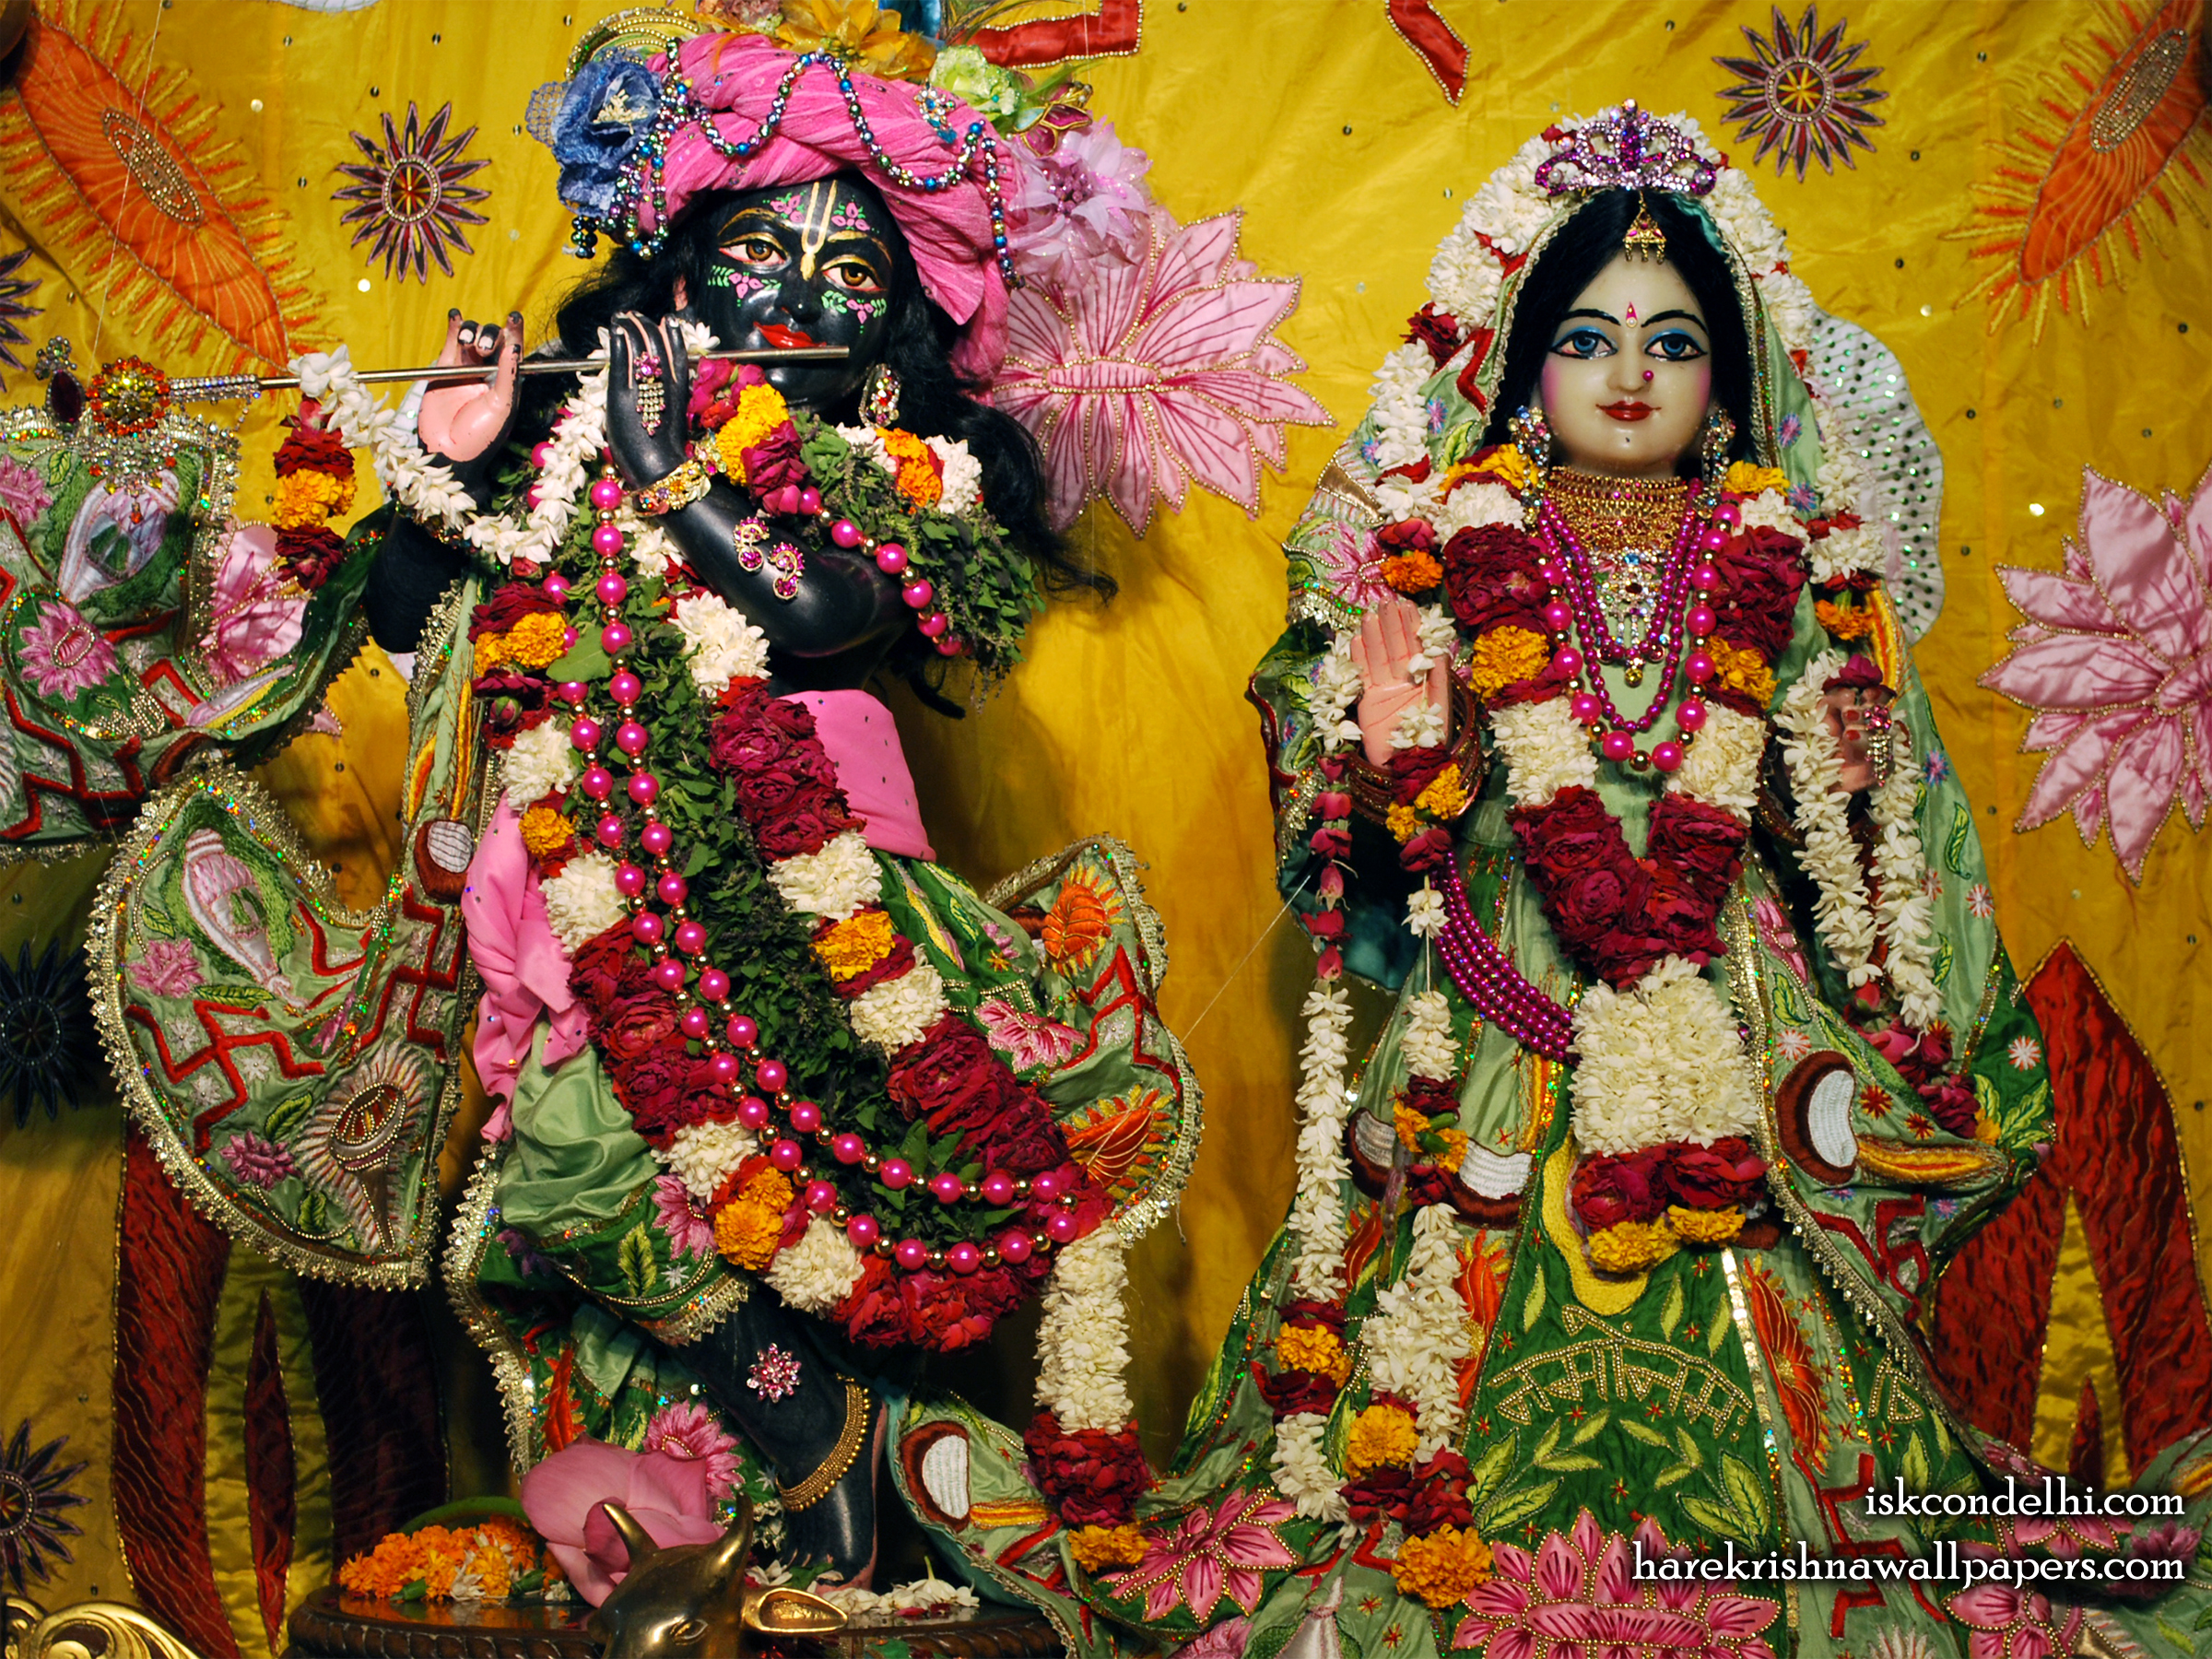 Sri Sri Radha Parthasarathi Wallpaper (003) Size 2400x1800 Download